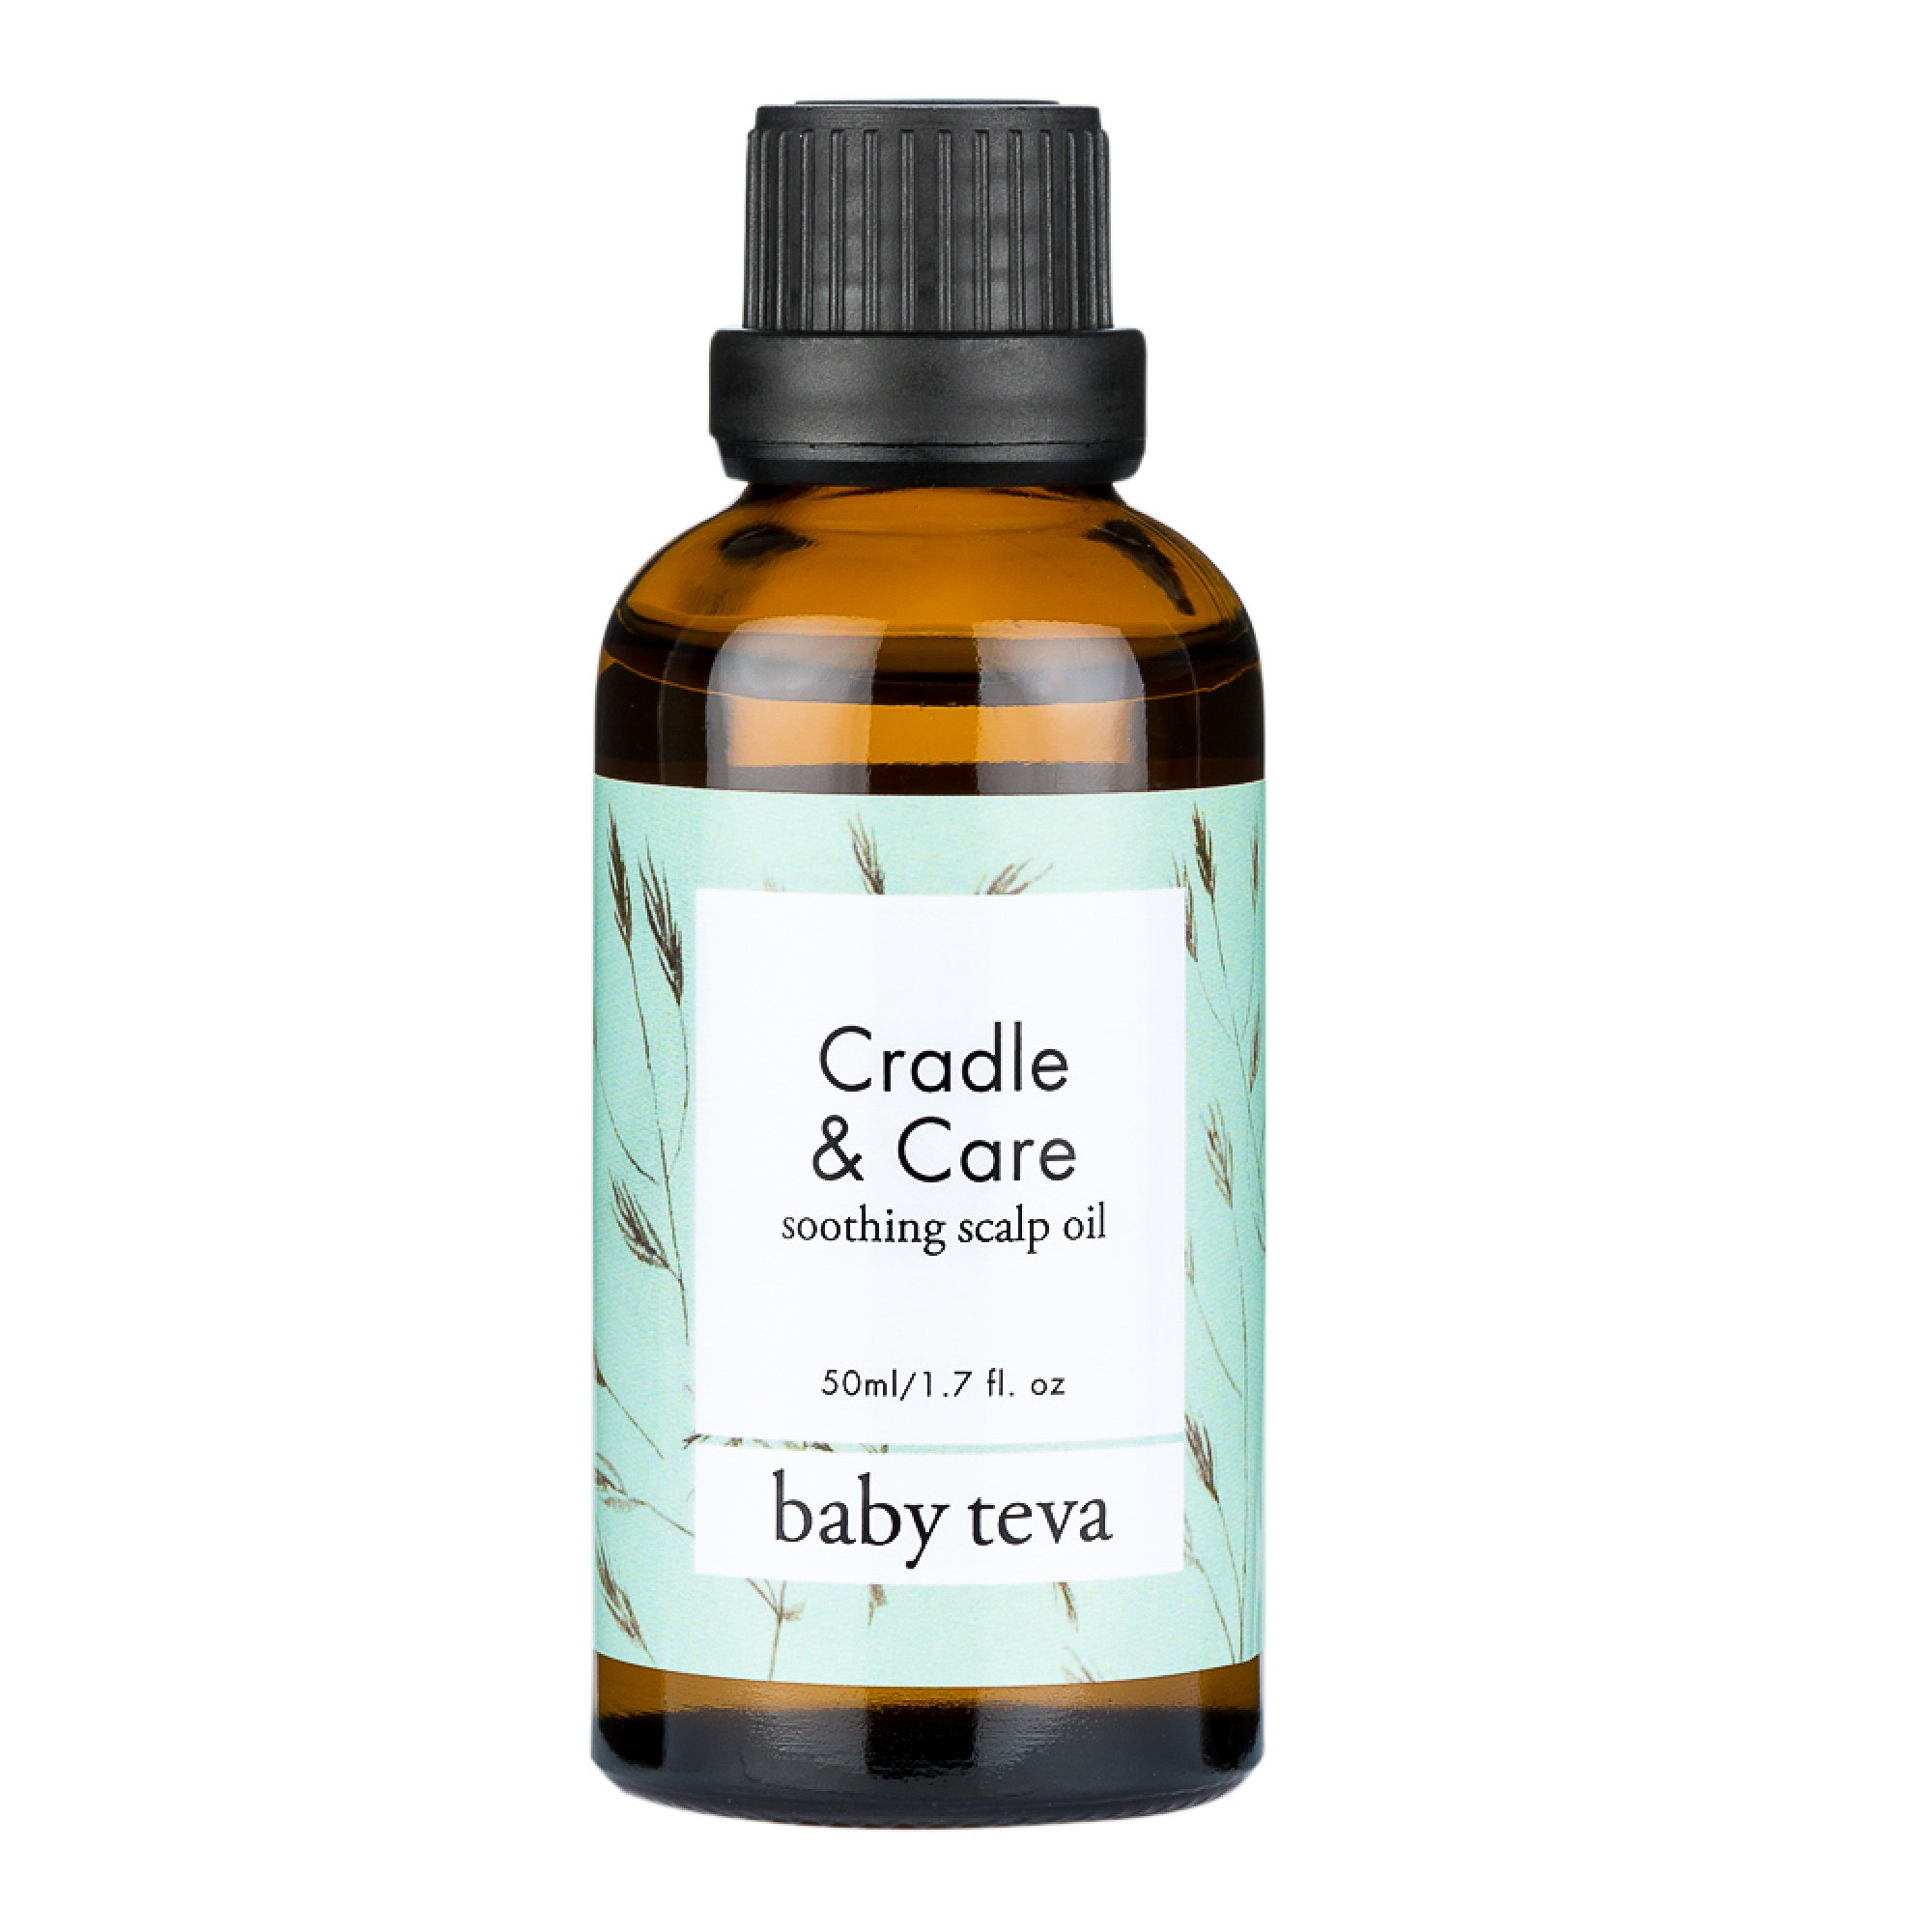 Cradle Cap Oil Treatment - Infant & Baby Remedy   Natural, Soothing, and Nourishing Dry Scalp Oil, by Baby Teva